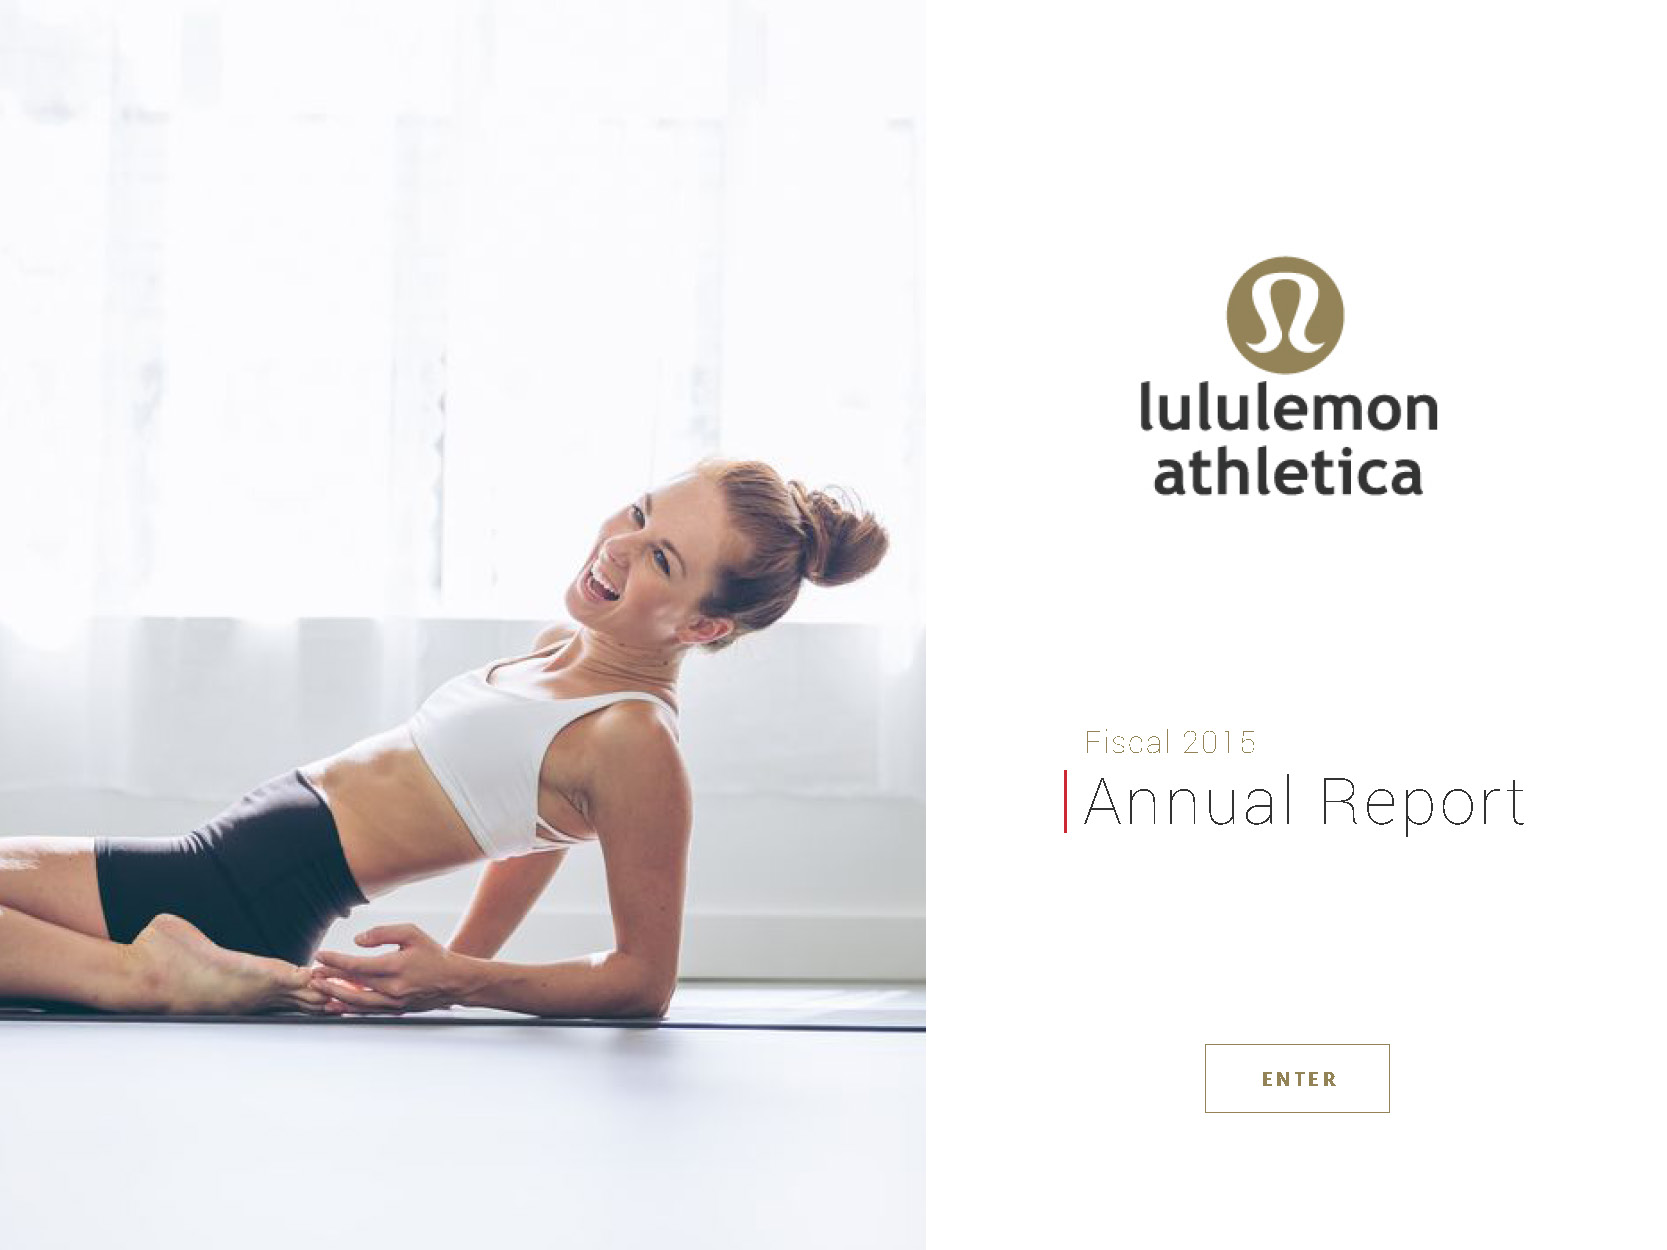 bt-lululemon-annual-report_Page_01.jpg